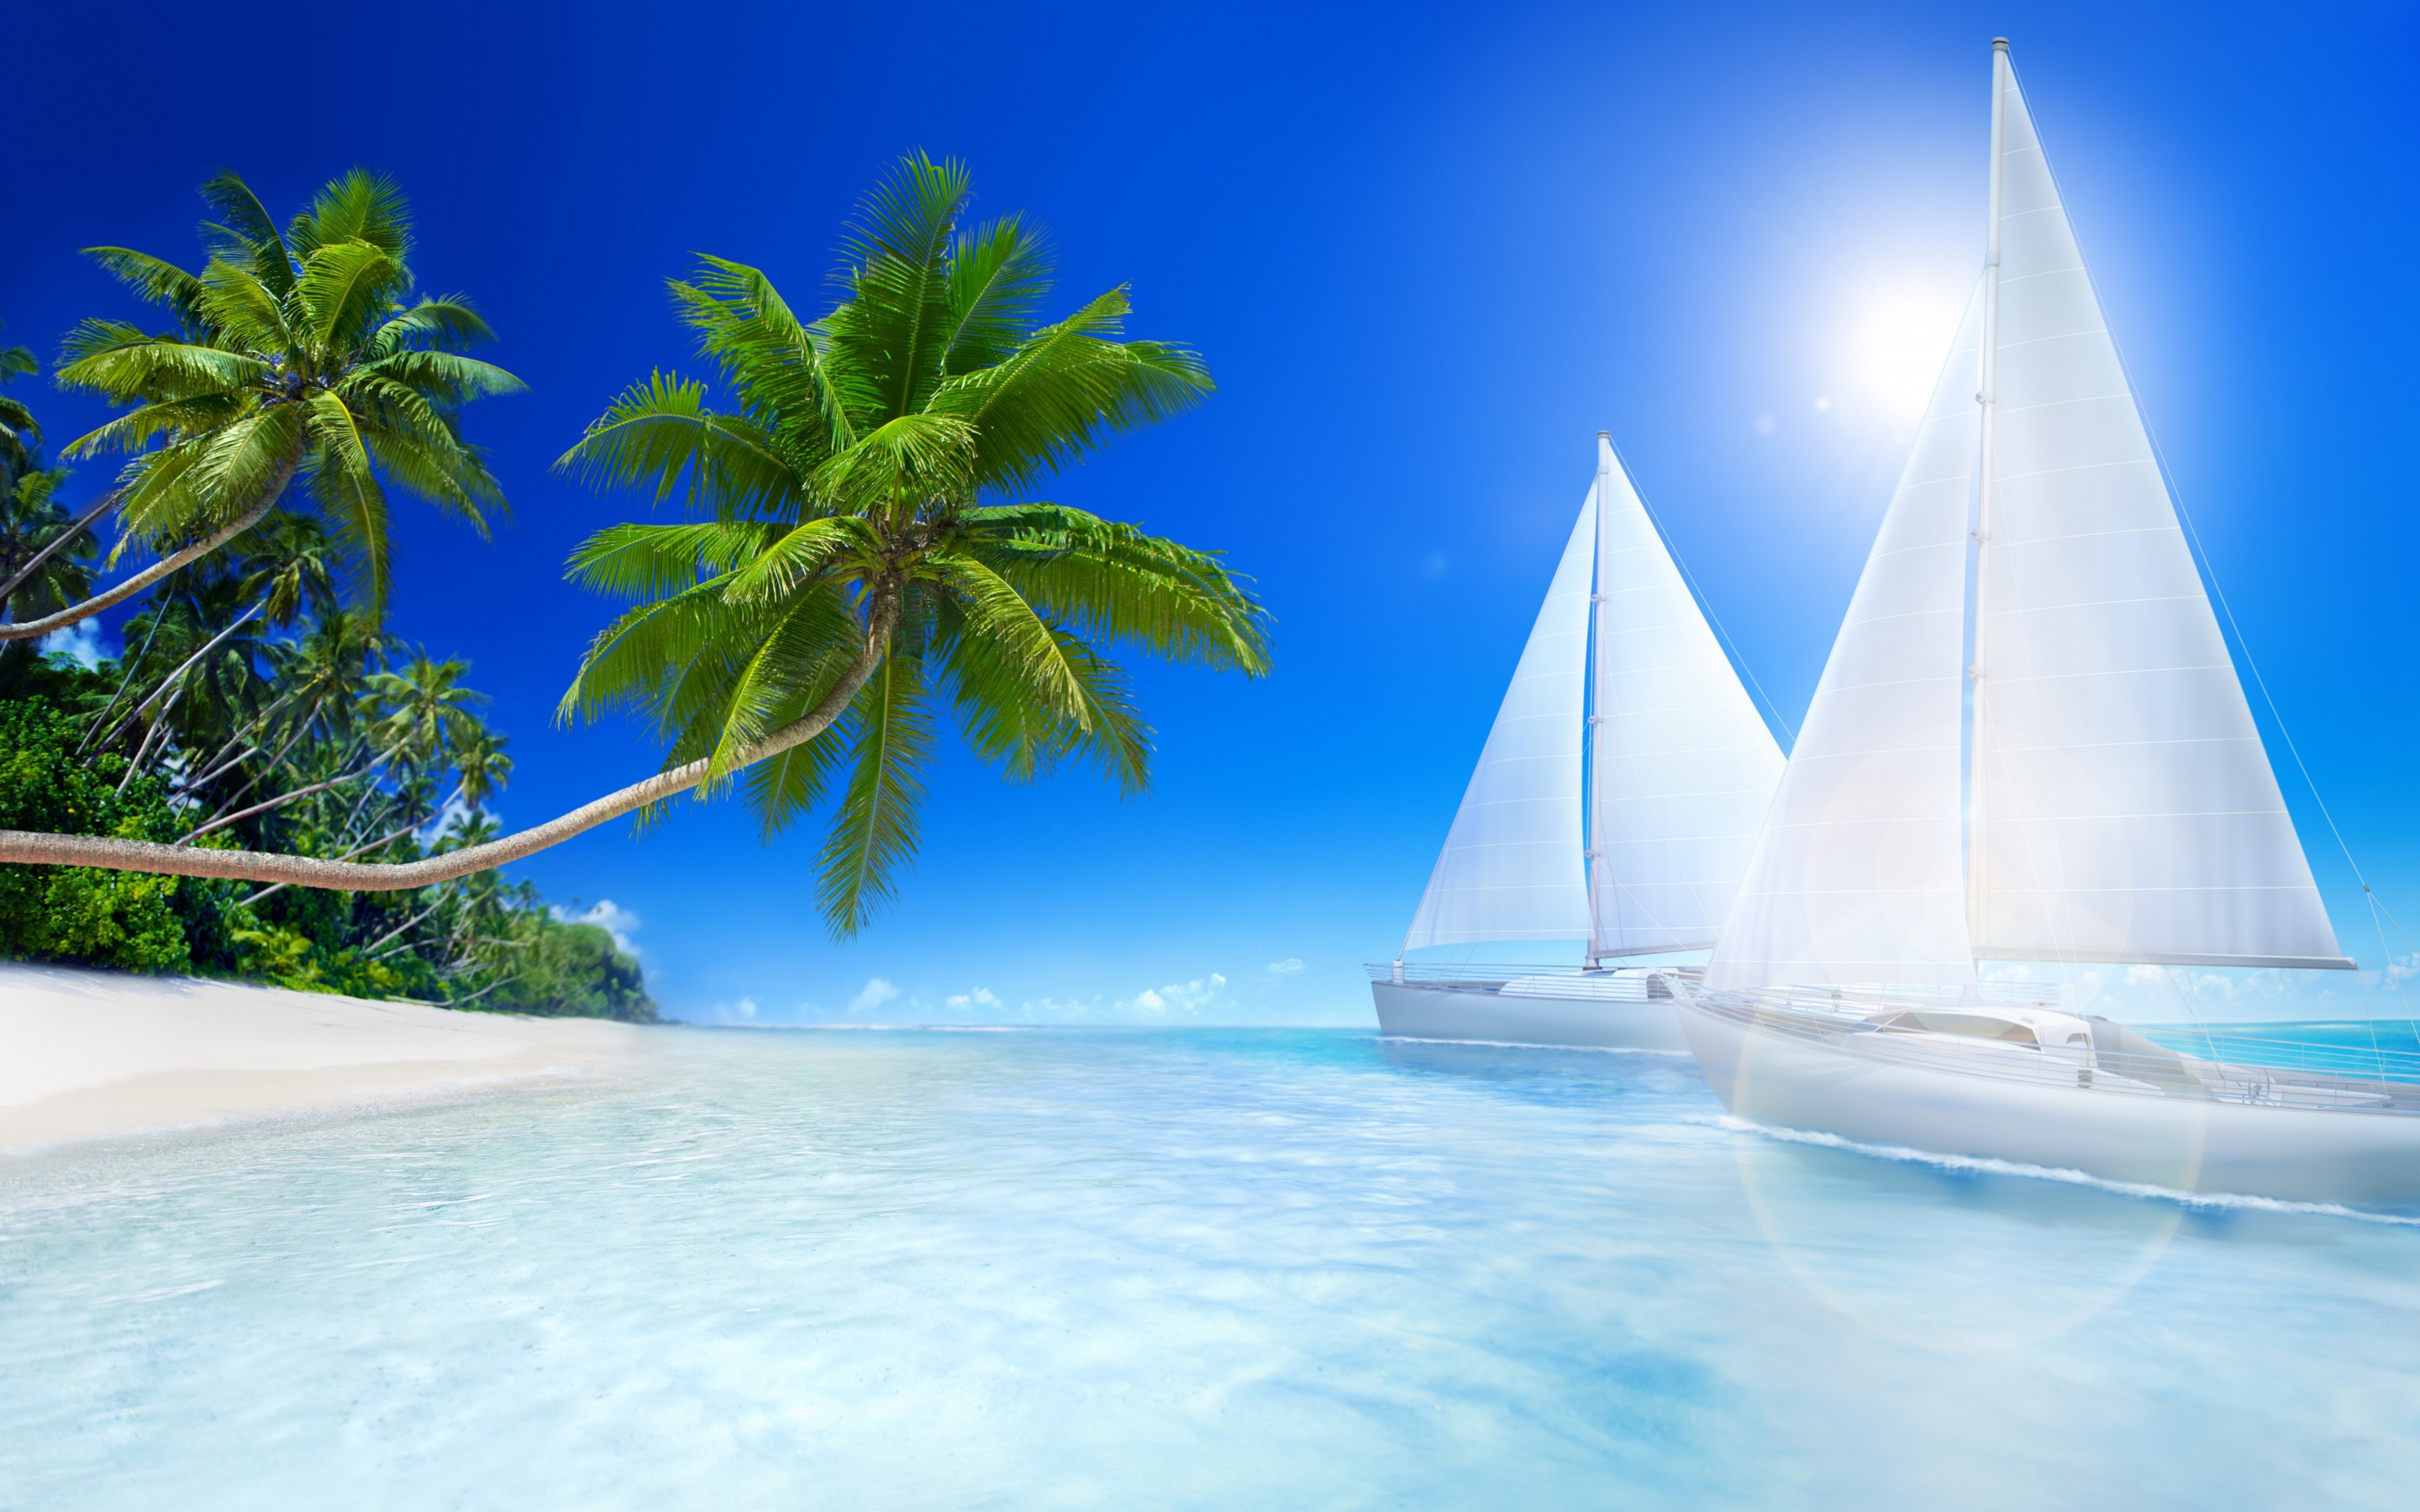 Hd Tropical Island Beach Paradise Wallpapers And Backgrounds: 45 Beach Wallpaper For Mobile And Desktop In Full HD For